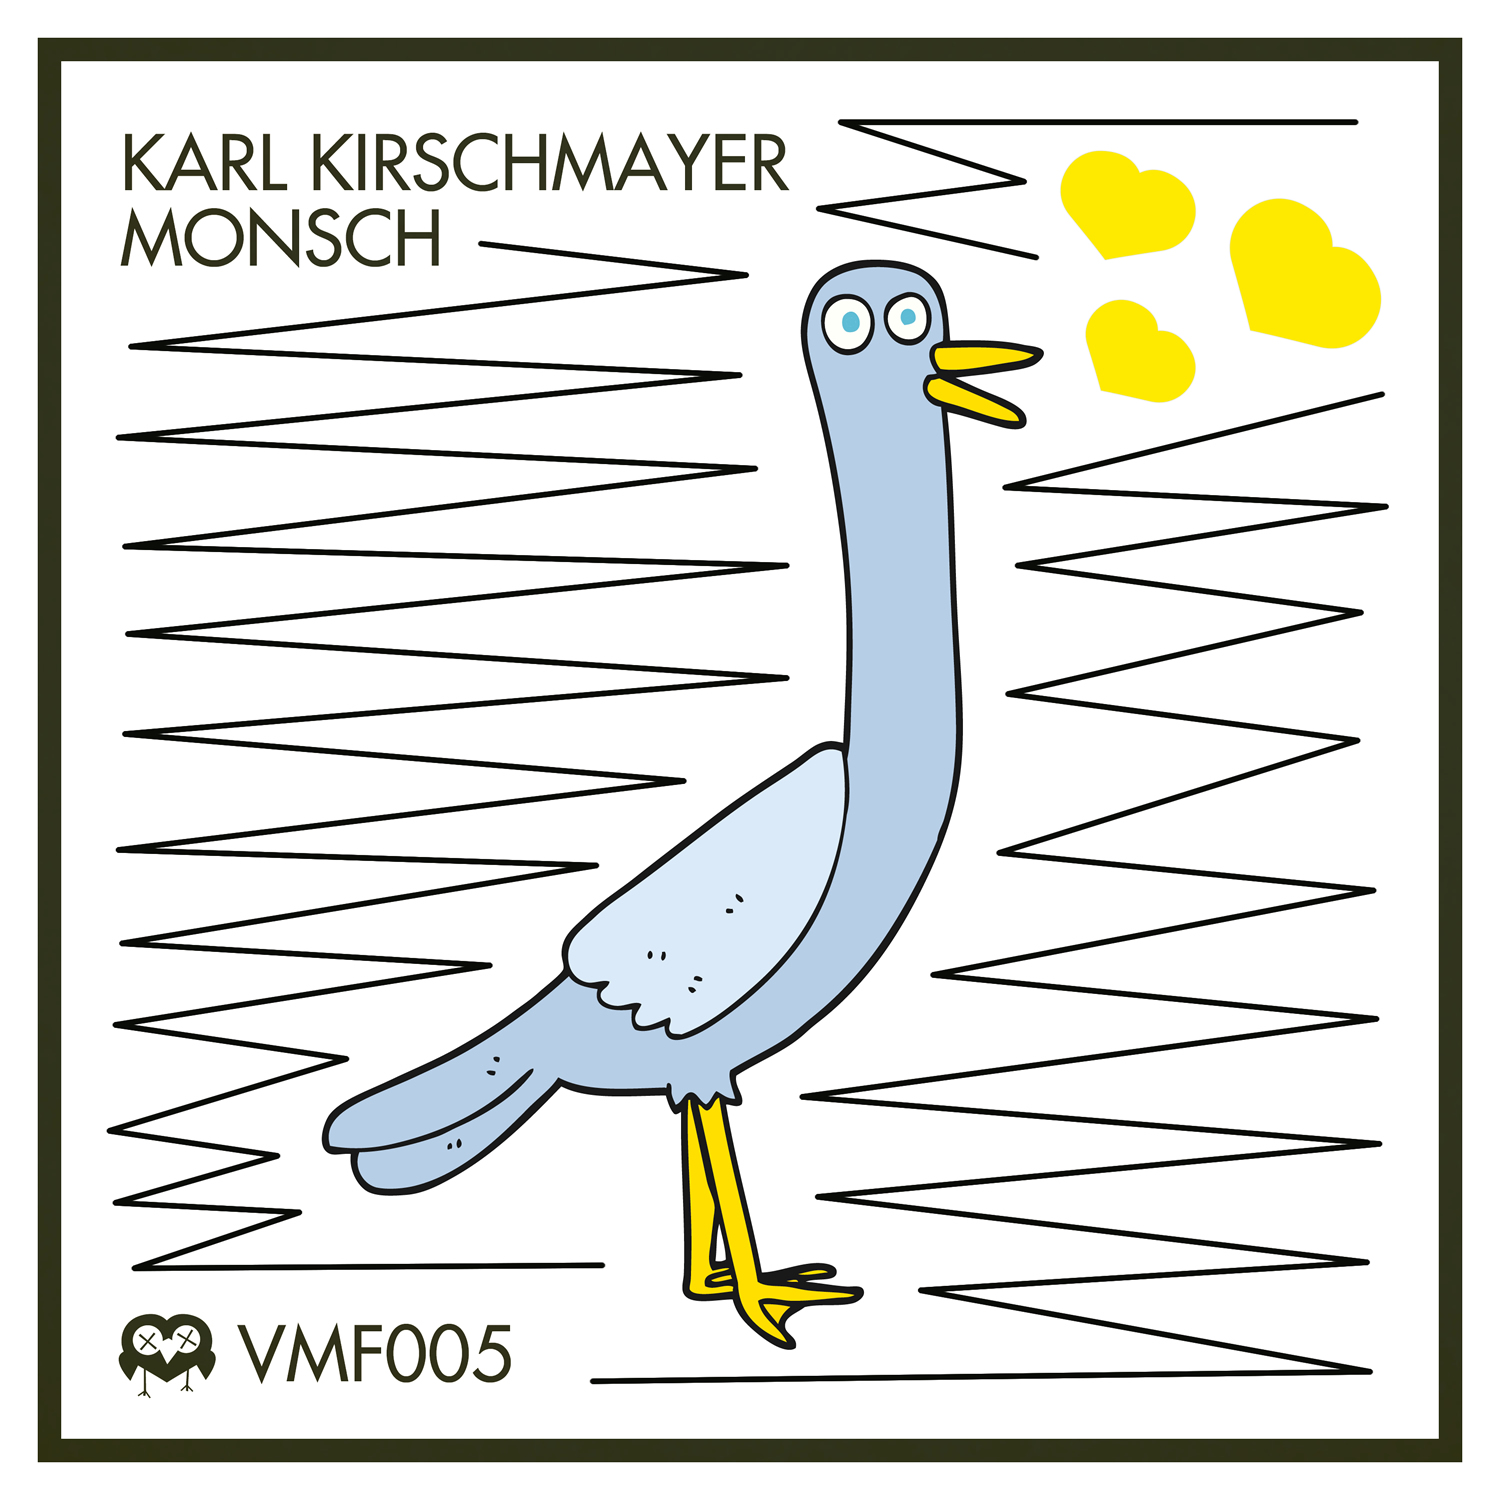 VMF 005 – Monsch EP